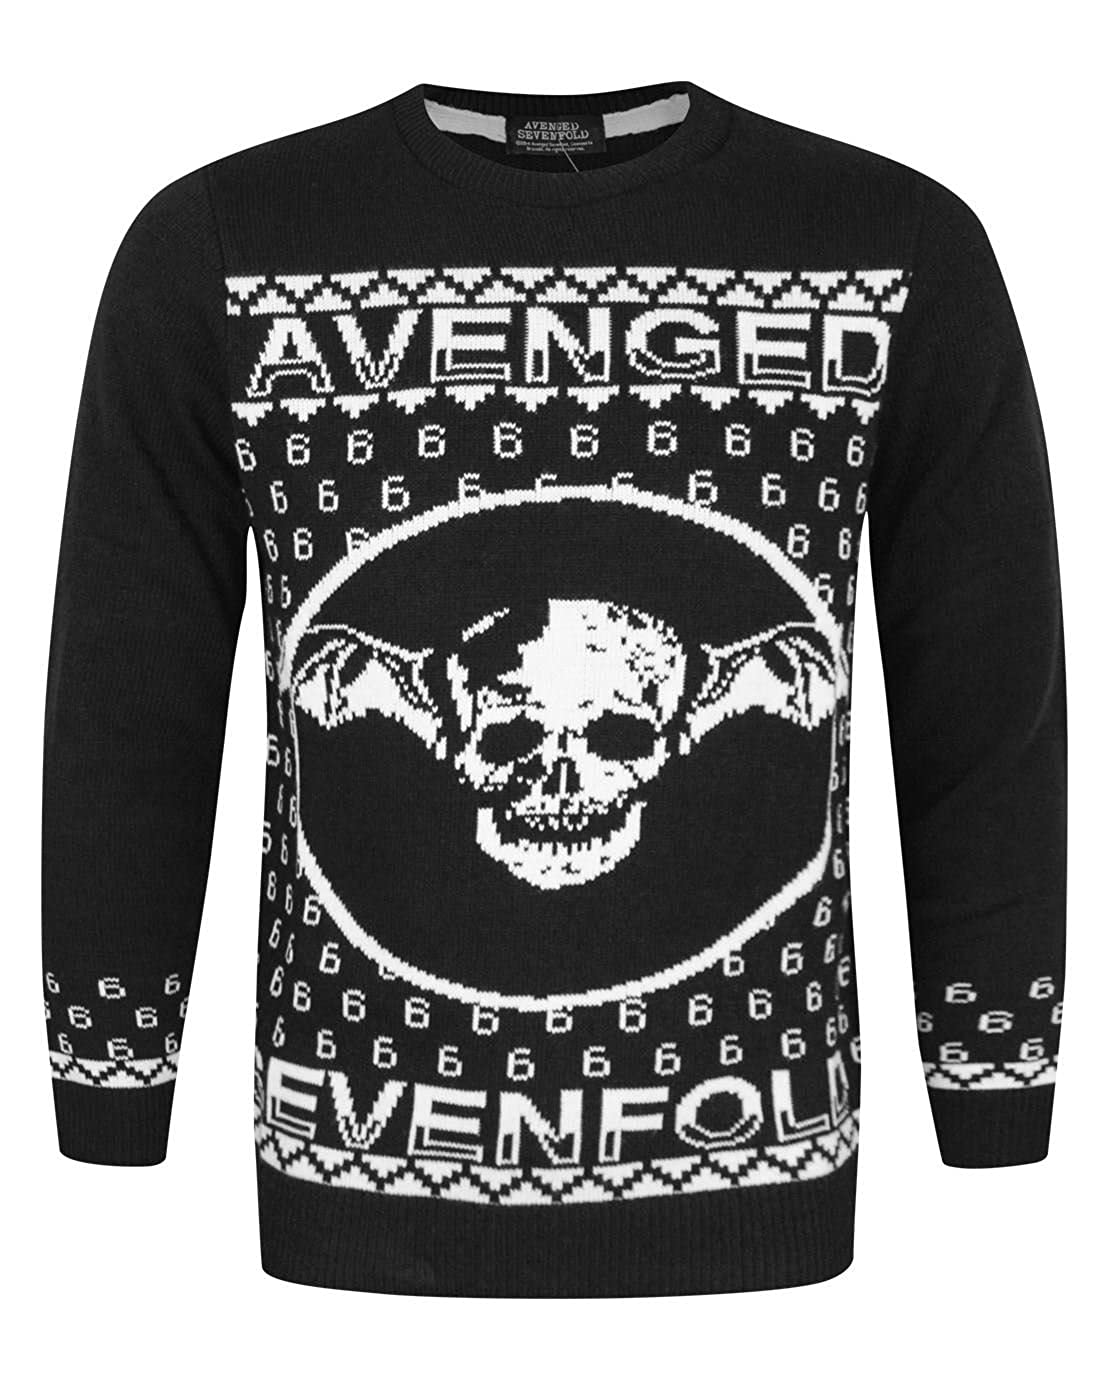 Avenged Sevenfold Deathbat Unisex Sweater Official